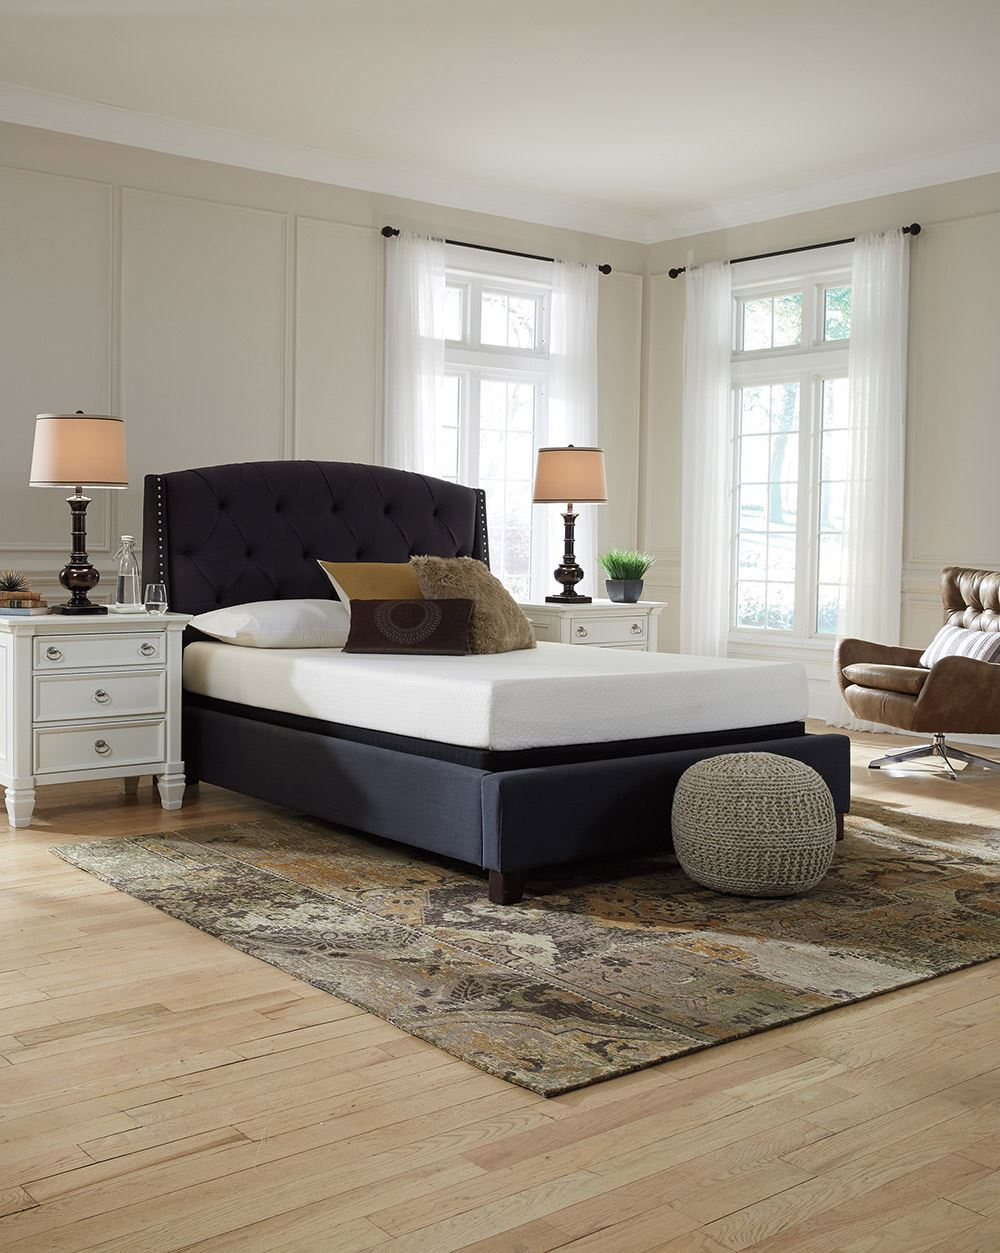 Picture of Ashley Chime 8 Inch Adjustable Head-Queen Mattress Set